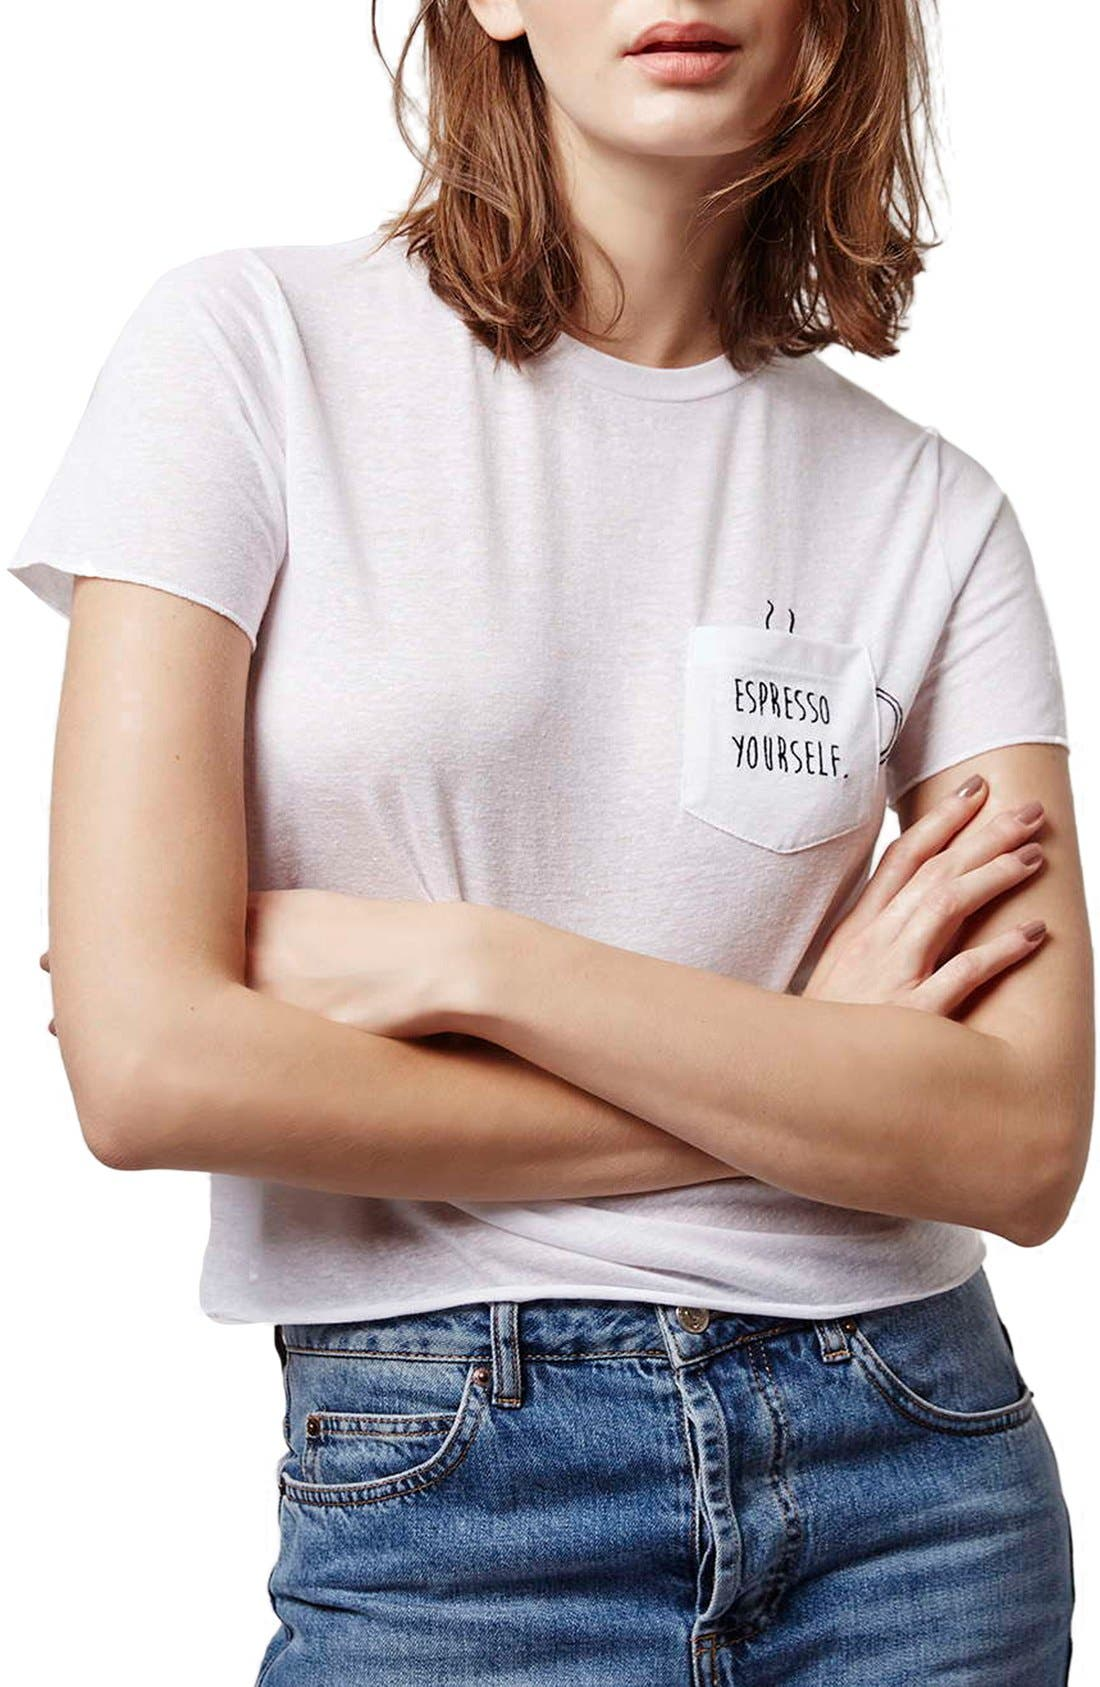 Alternate Image 1 Selected - Topshop 'Espresso Yourself' Pocket Tee